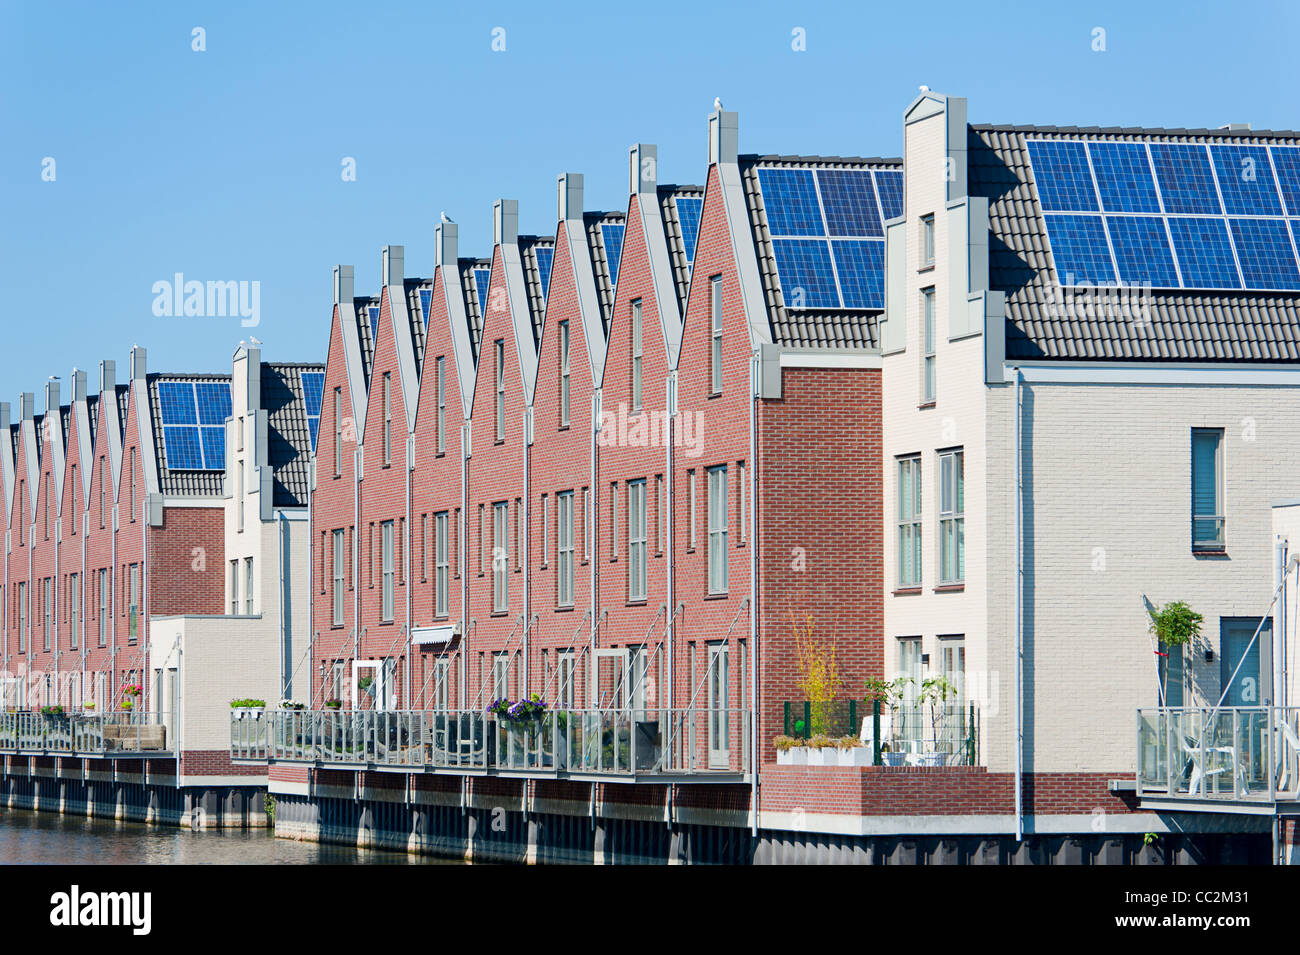 Modern Dutch houses with solar panels on roof - Stock Image